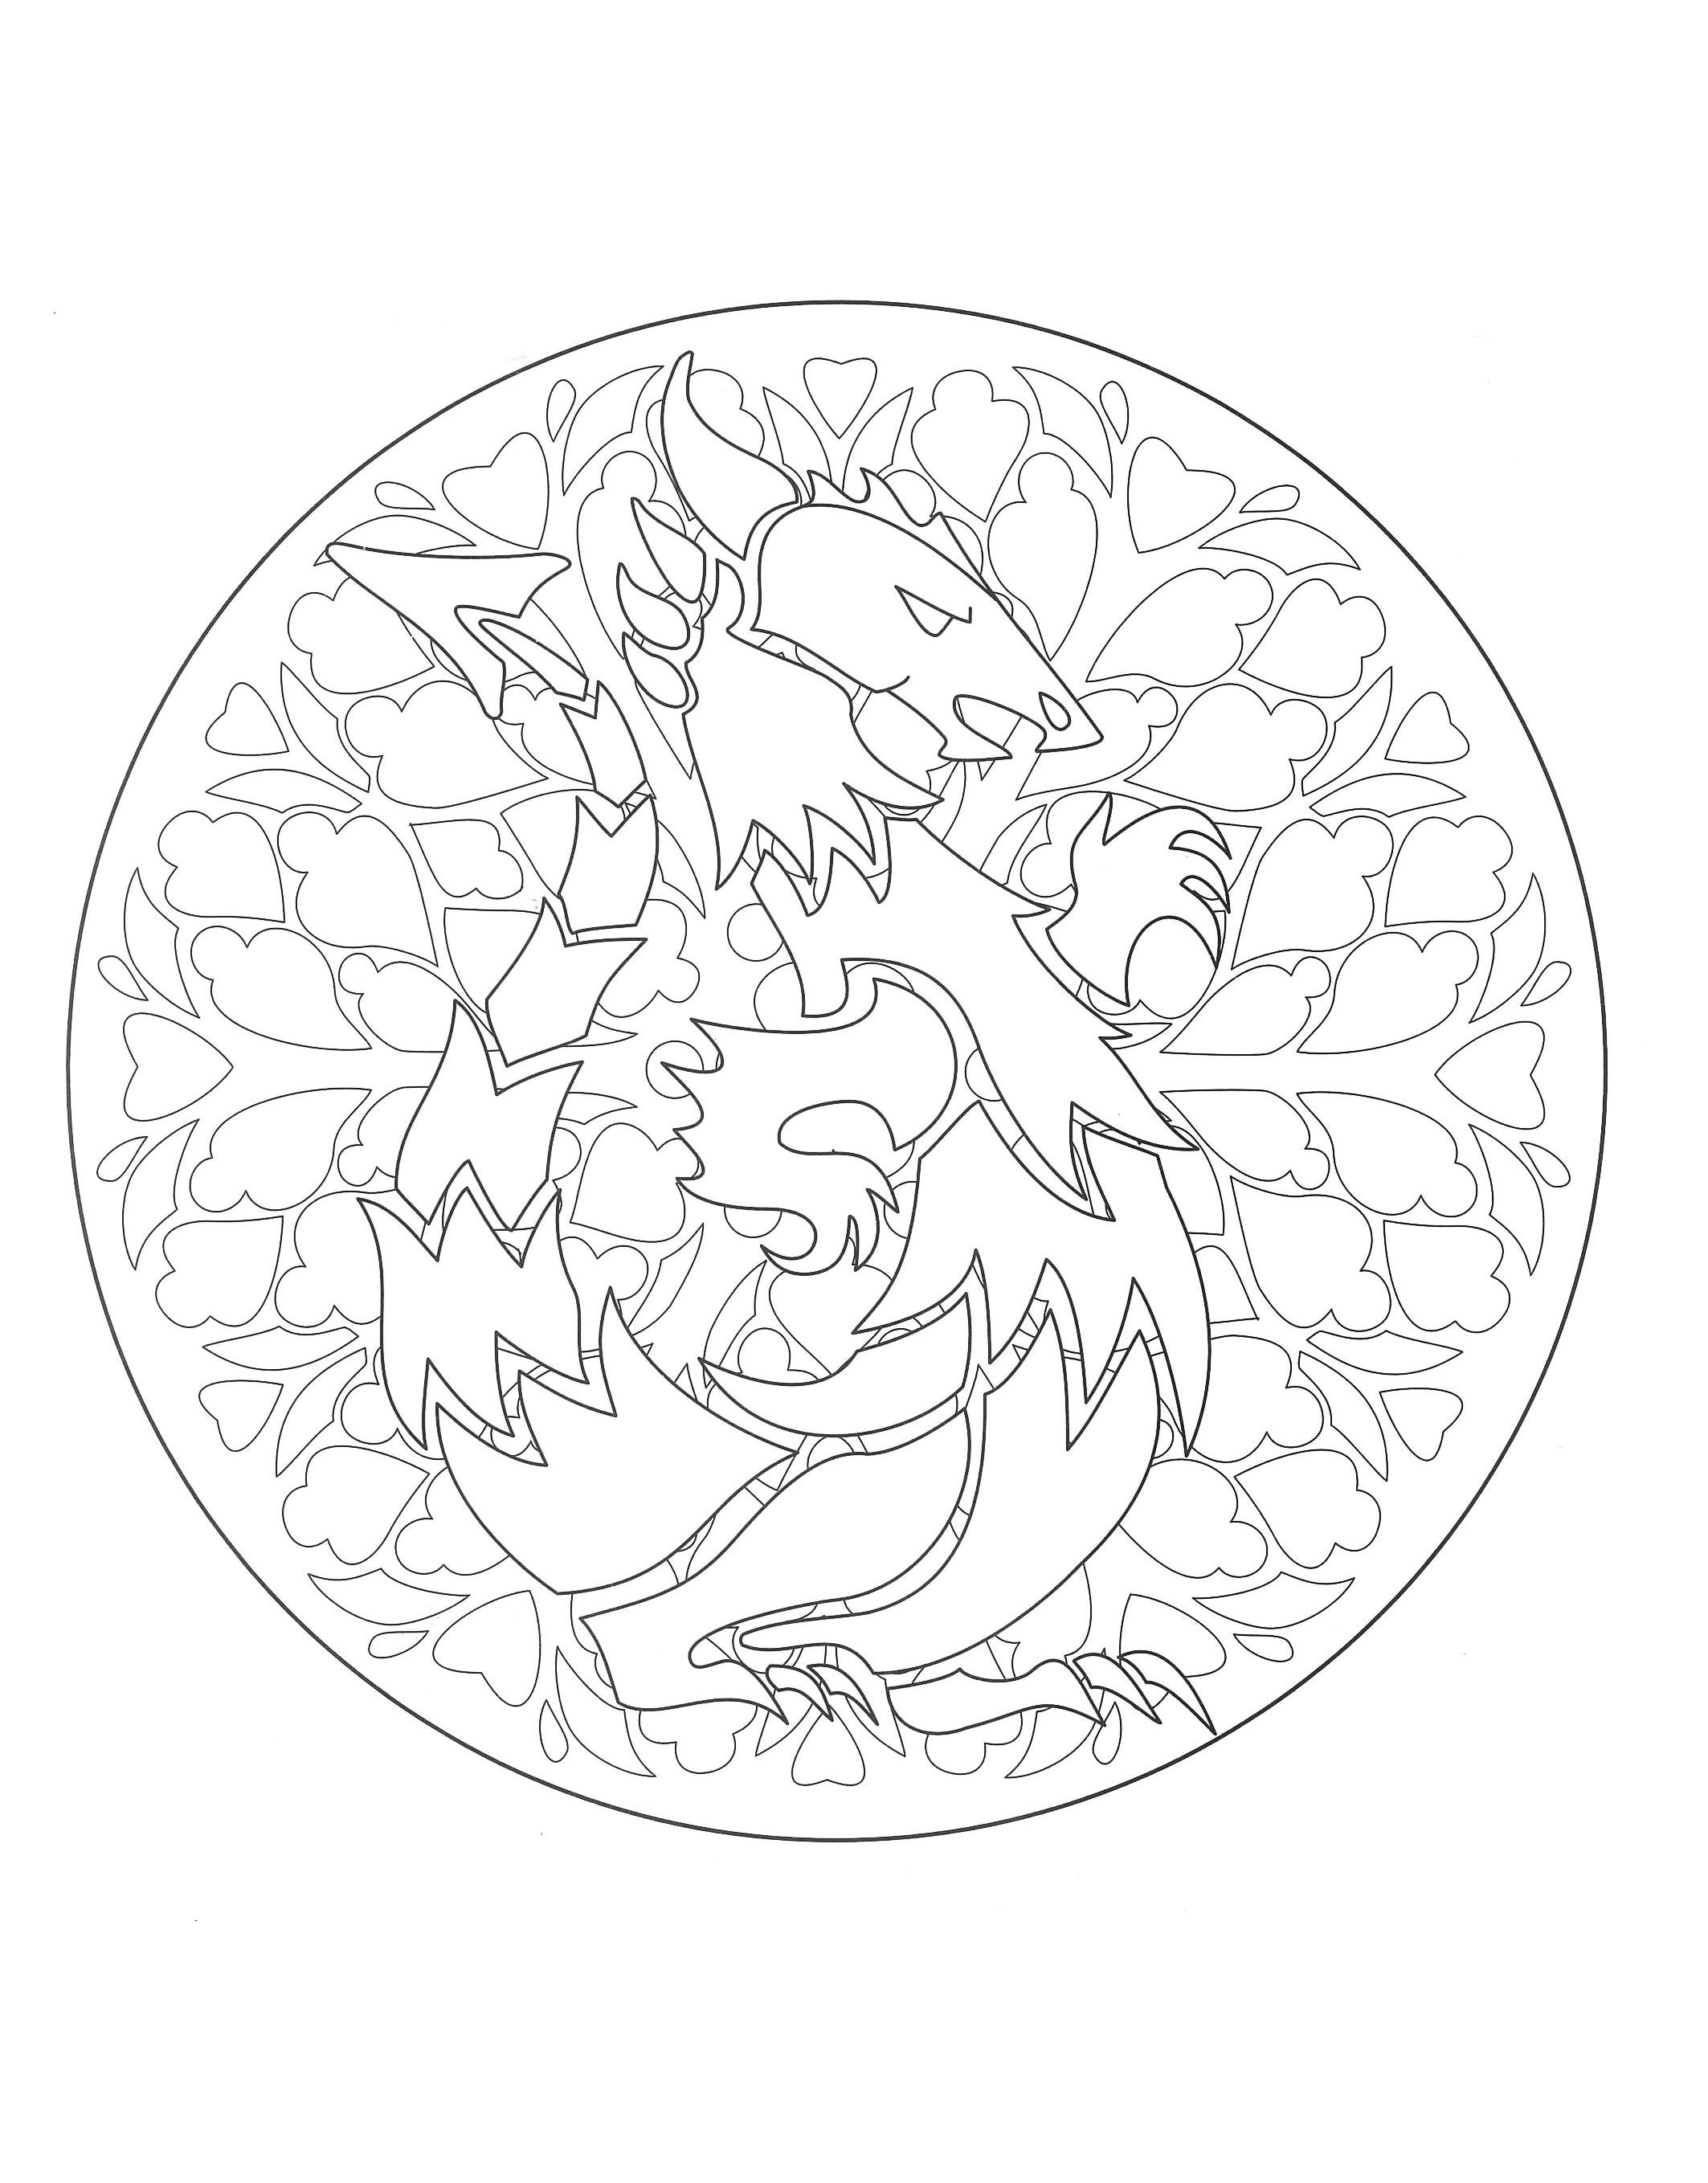 Thanksgiving mandala coloring pages - Free Mandalas Page Coloring To Print Mandala Dragon 1